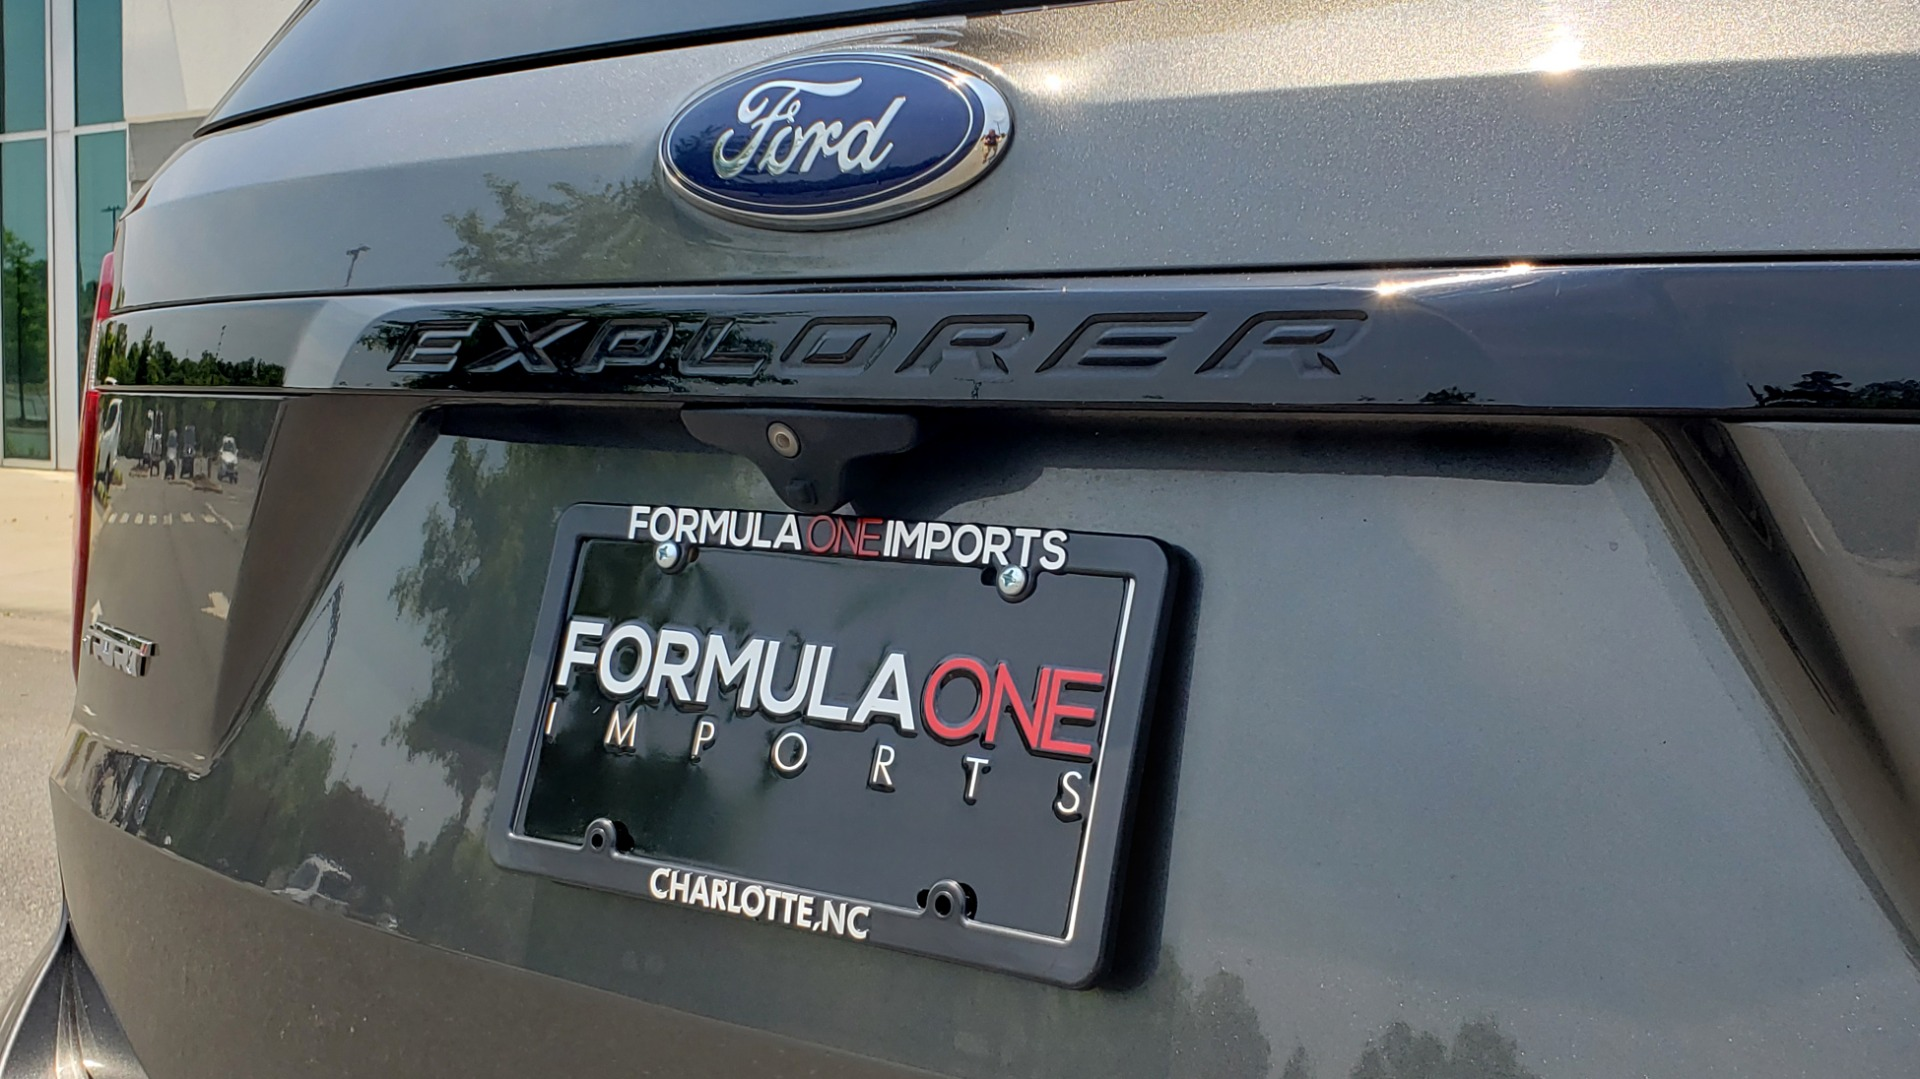 Used 2016 Ford EXPLORER SPORT 4WD / 3.5L ECOBOOST / 6-SPD AUTO / BSM / REARVIEW for sale Sold at Formula Imports in Charlotte NC 28227 29